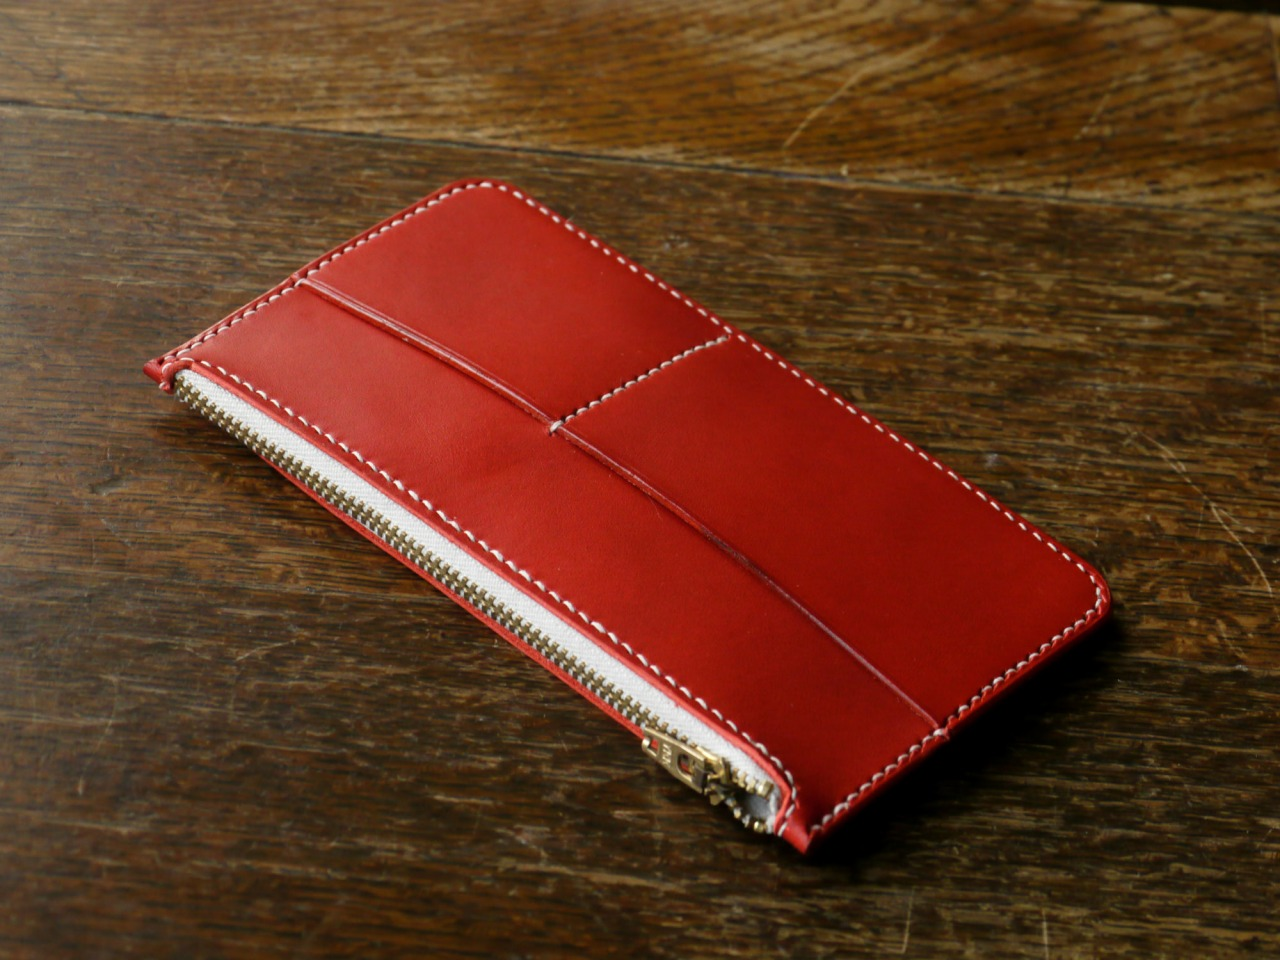 This Zip Wallet and much more will be available to purchase on M.E.S stall at  Portobello Market / Golborne Road  between  15th - 24th of December ,   plus further sample sale and one off items, all ready to go!